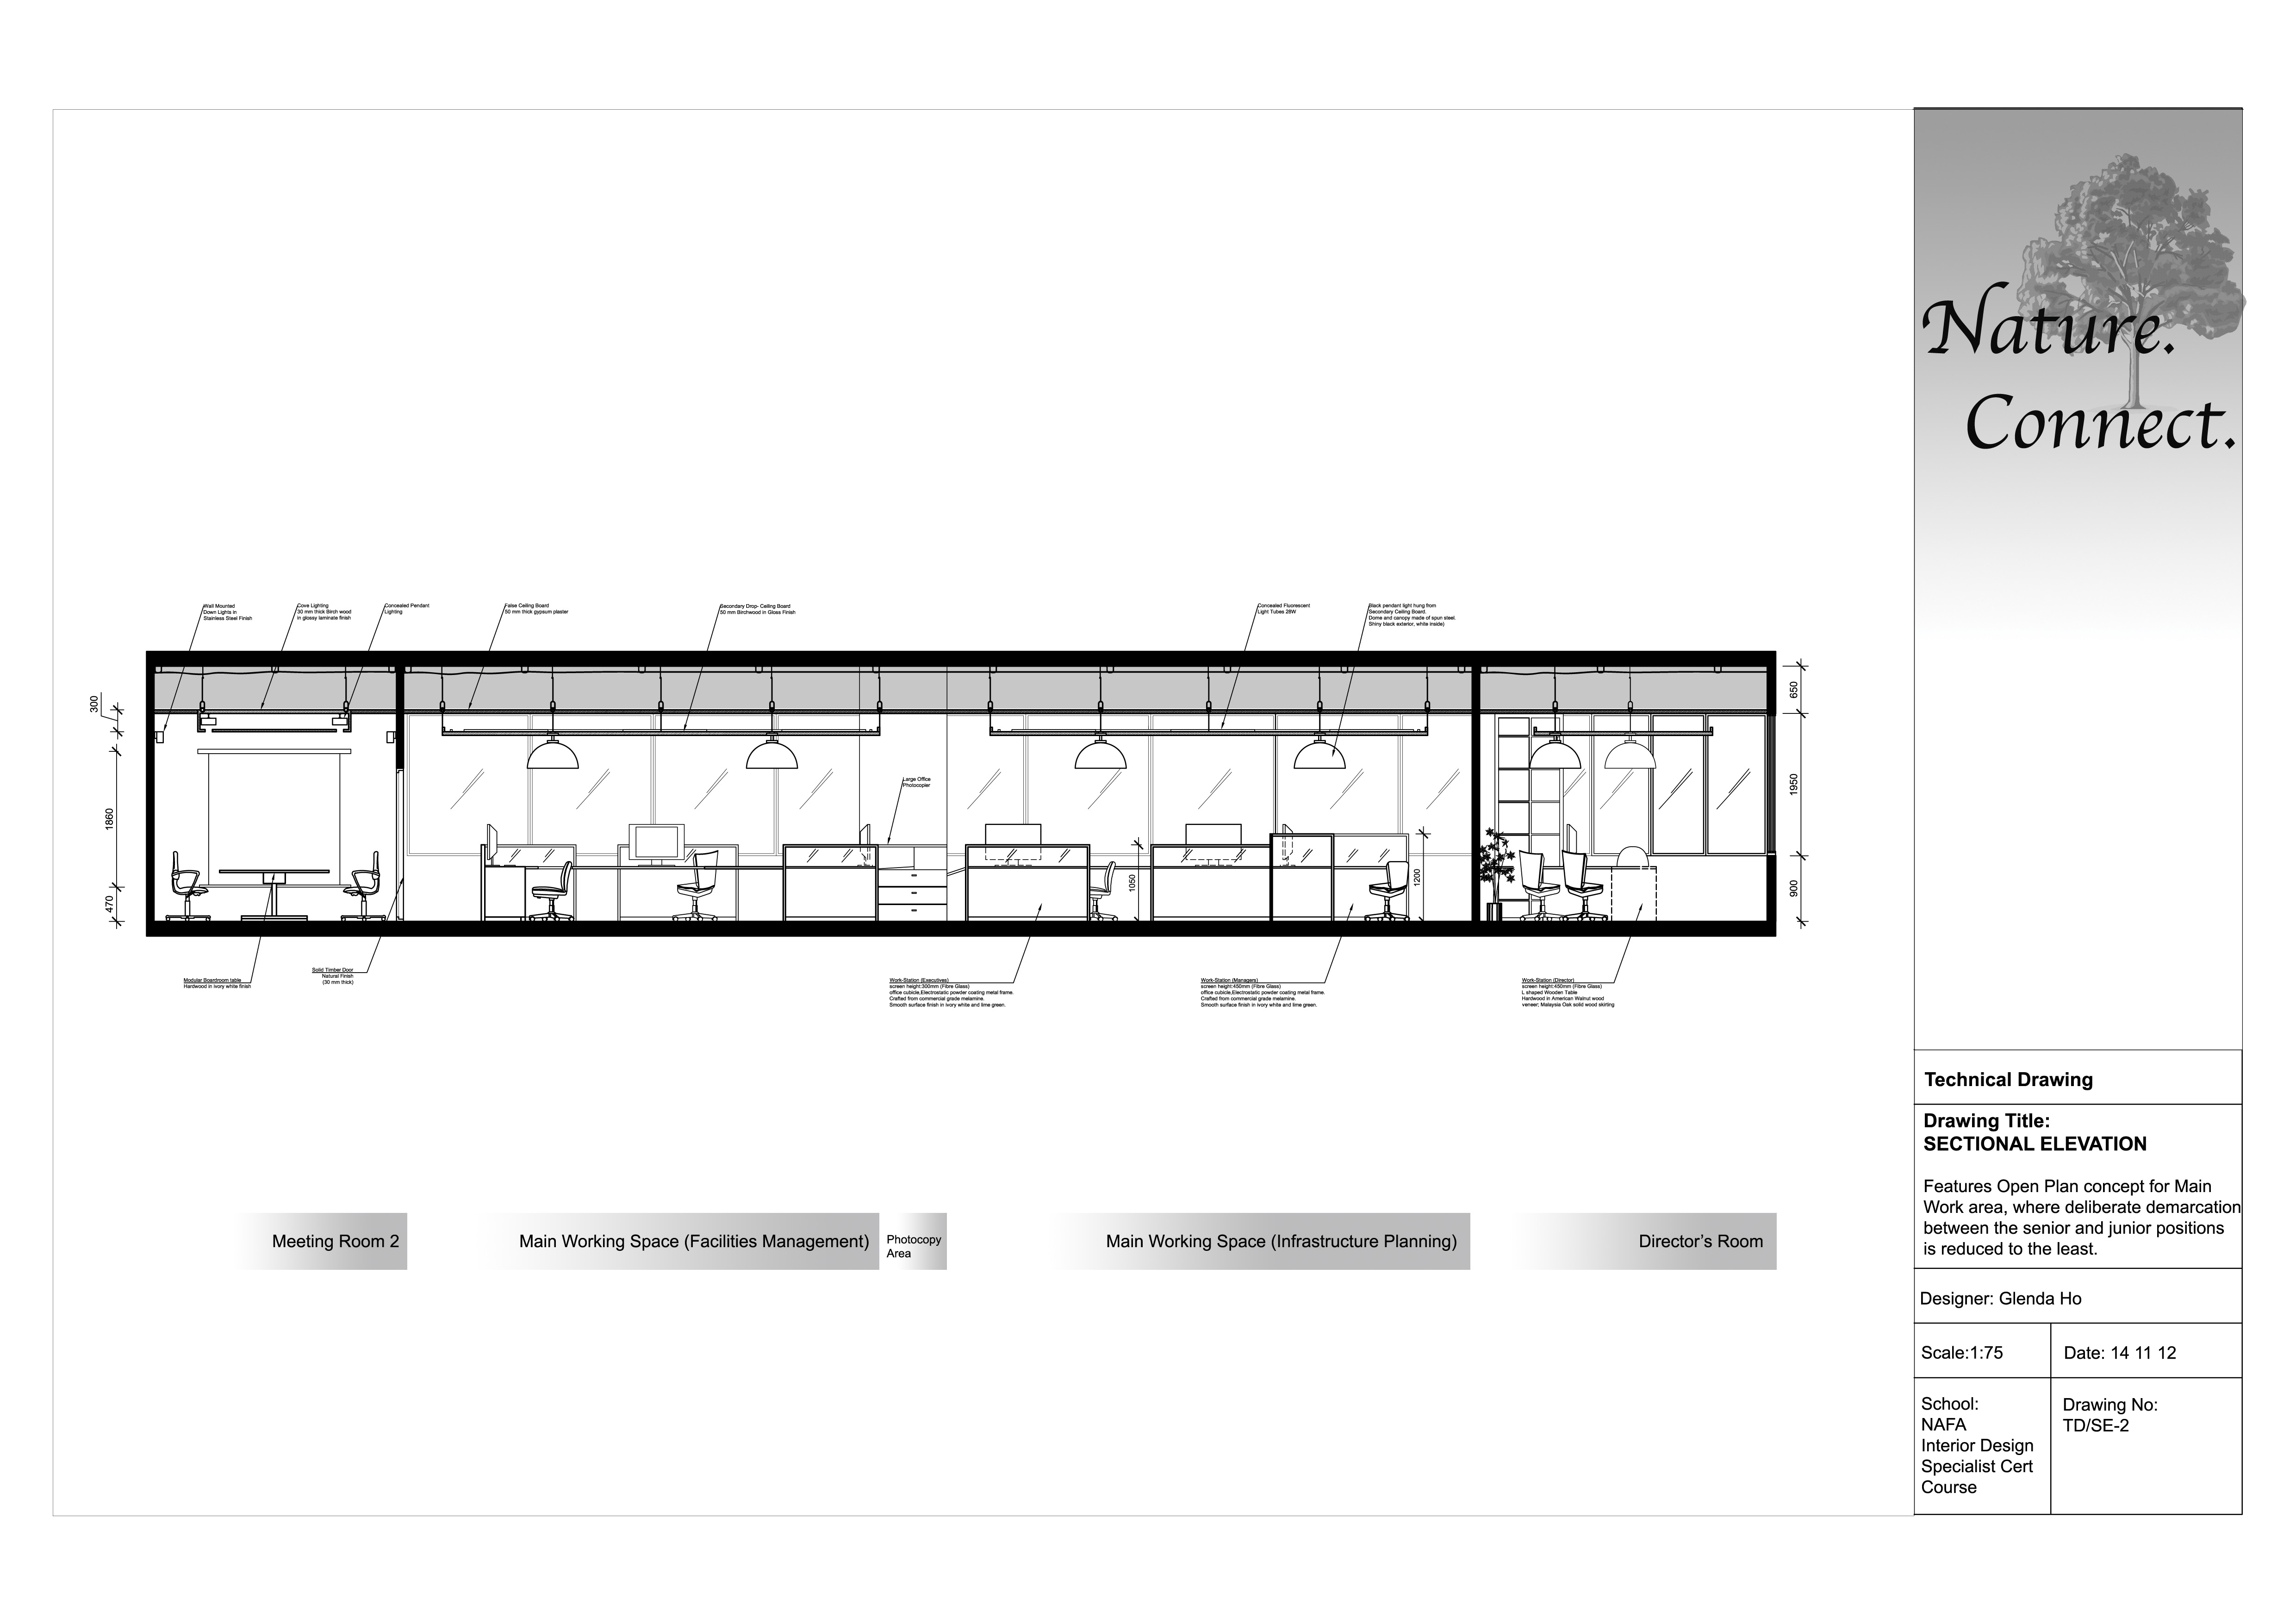 Sectional elevation 2